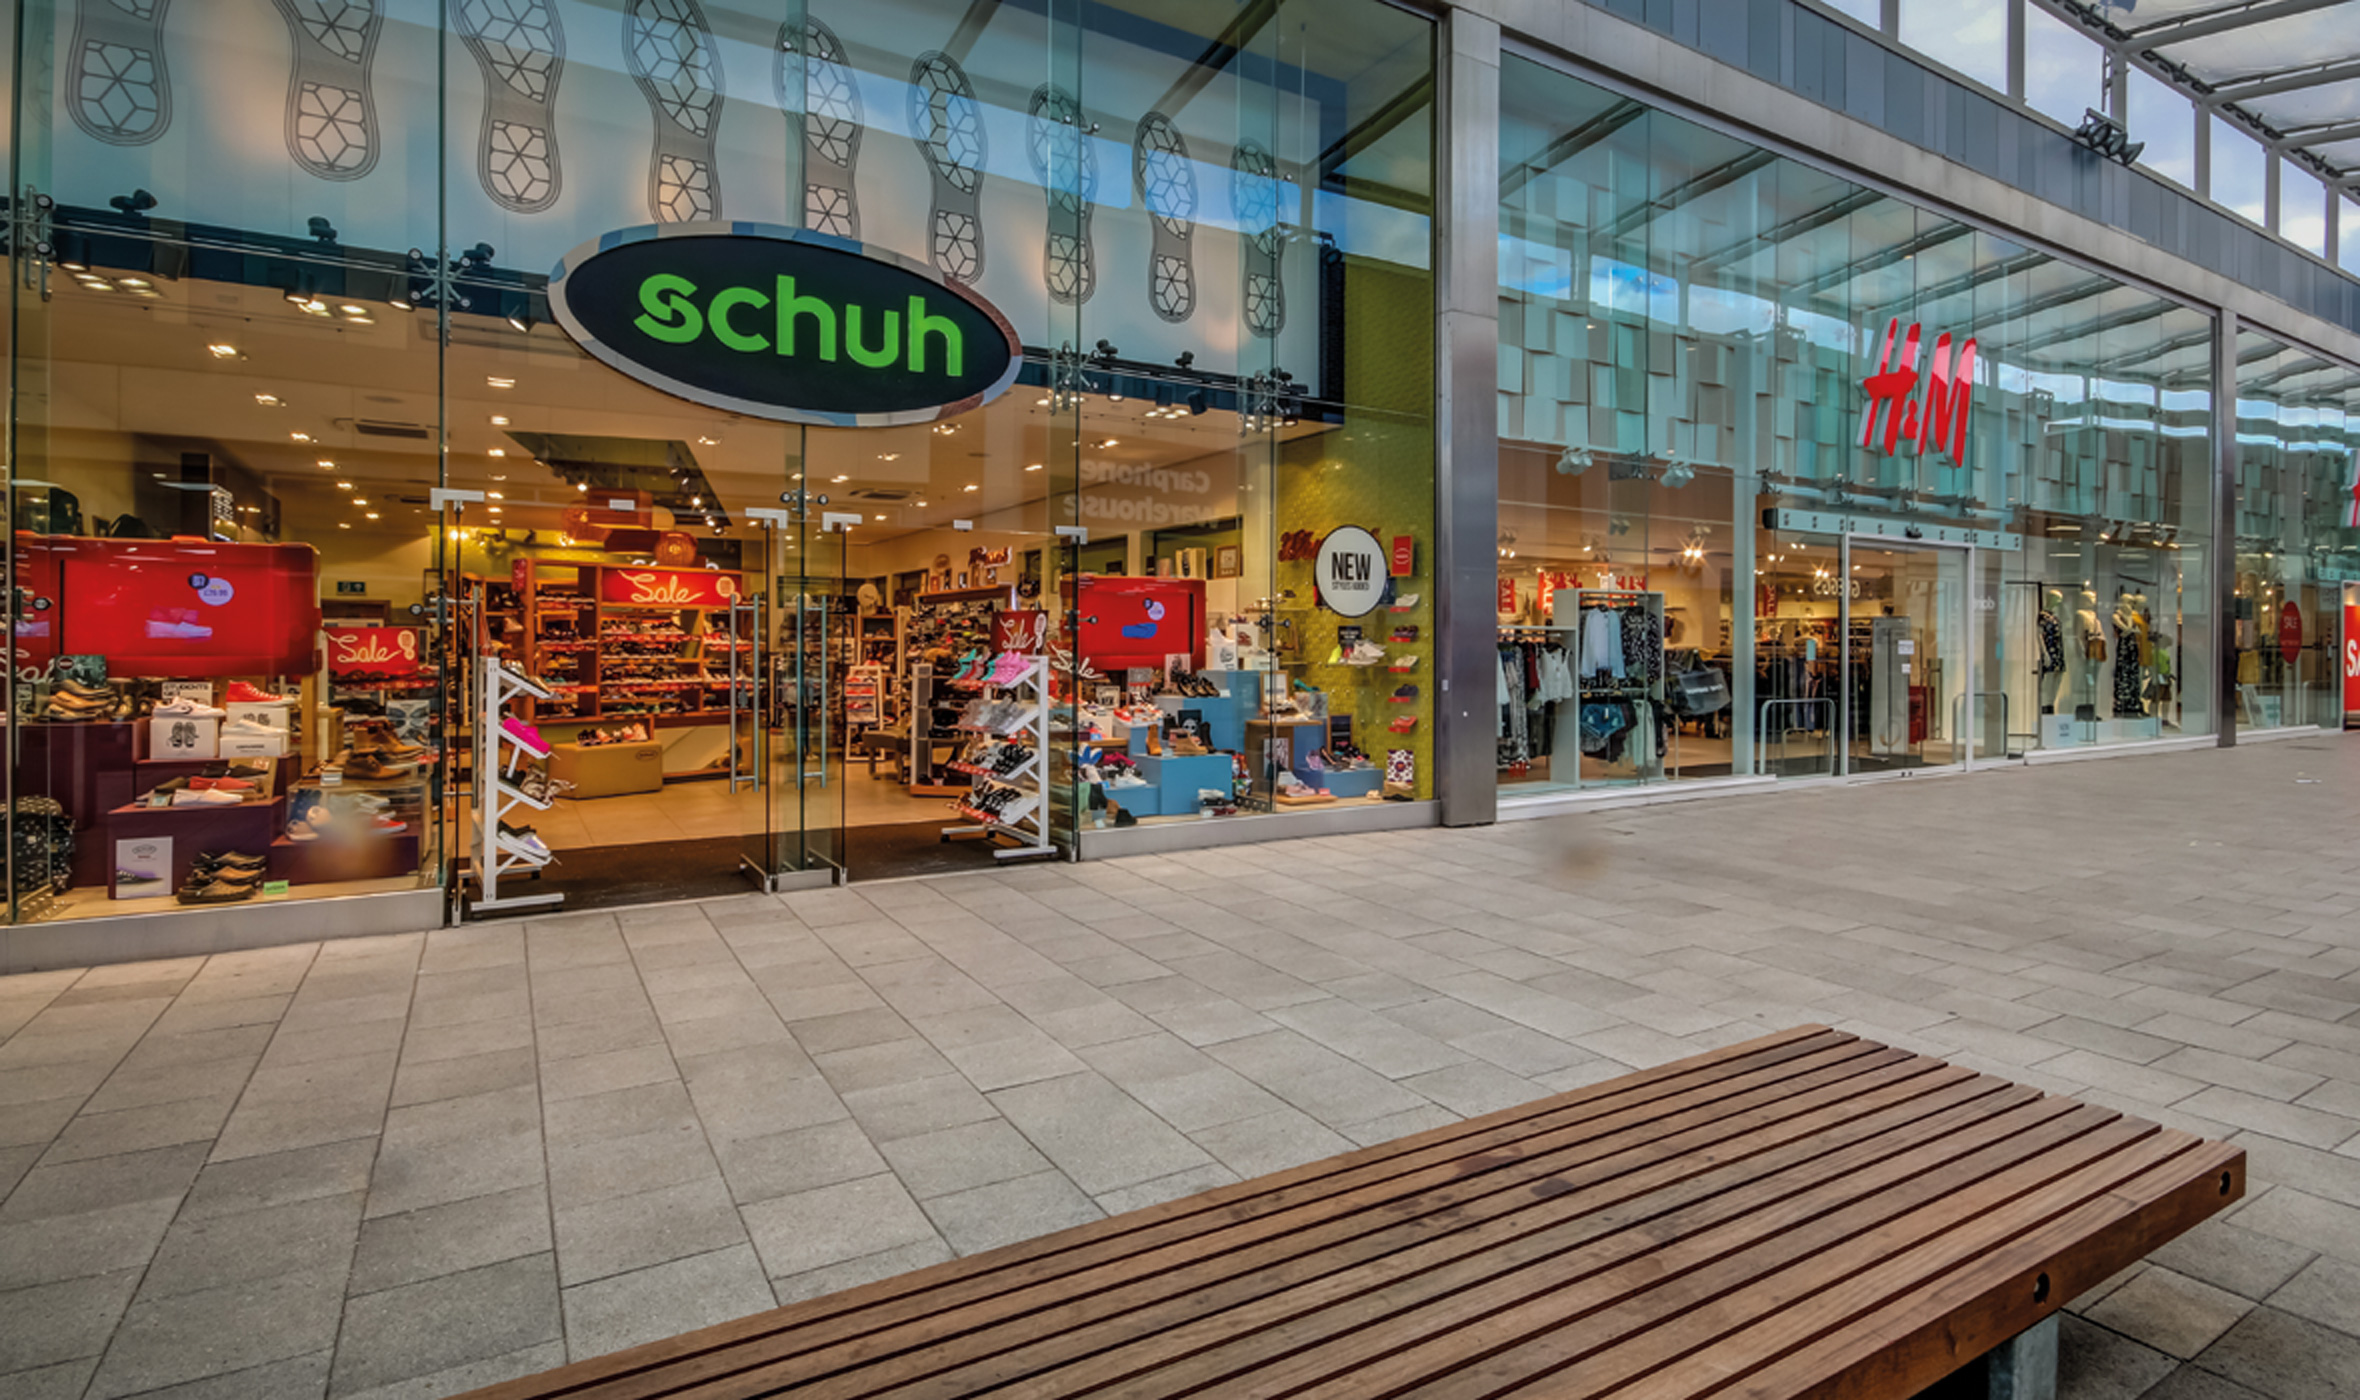 New Square Shopping Centre, West Bromwich